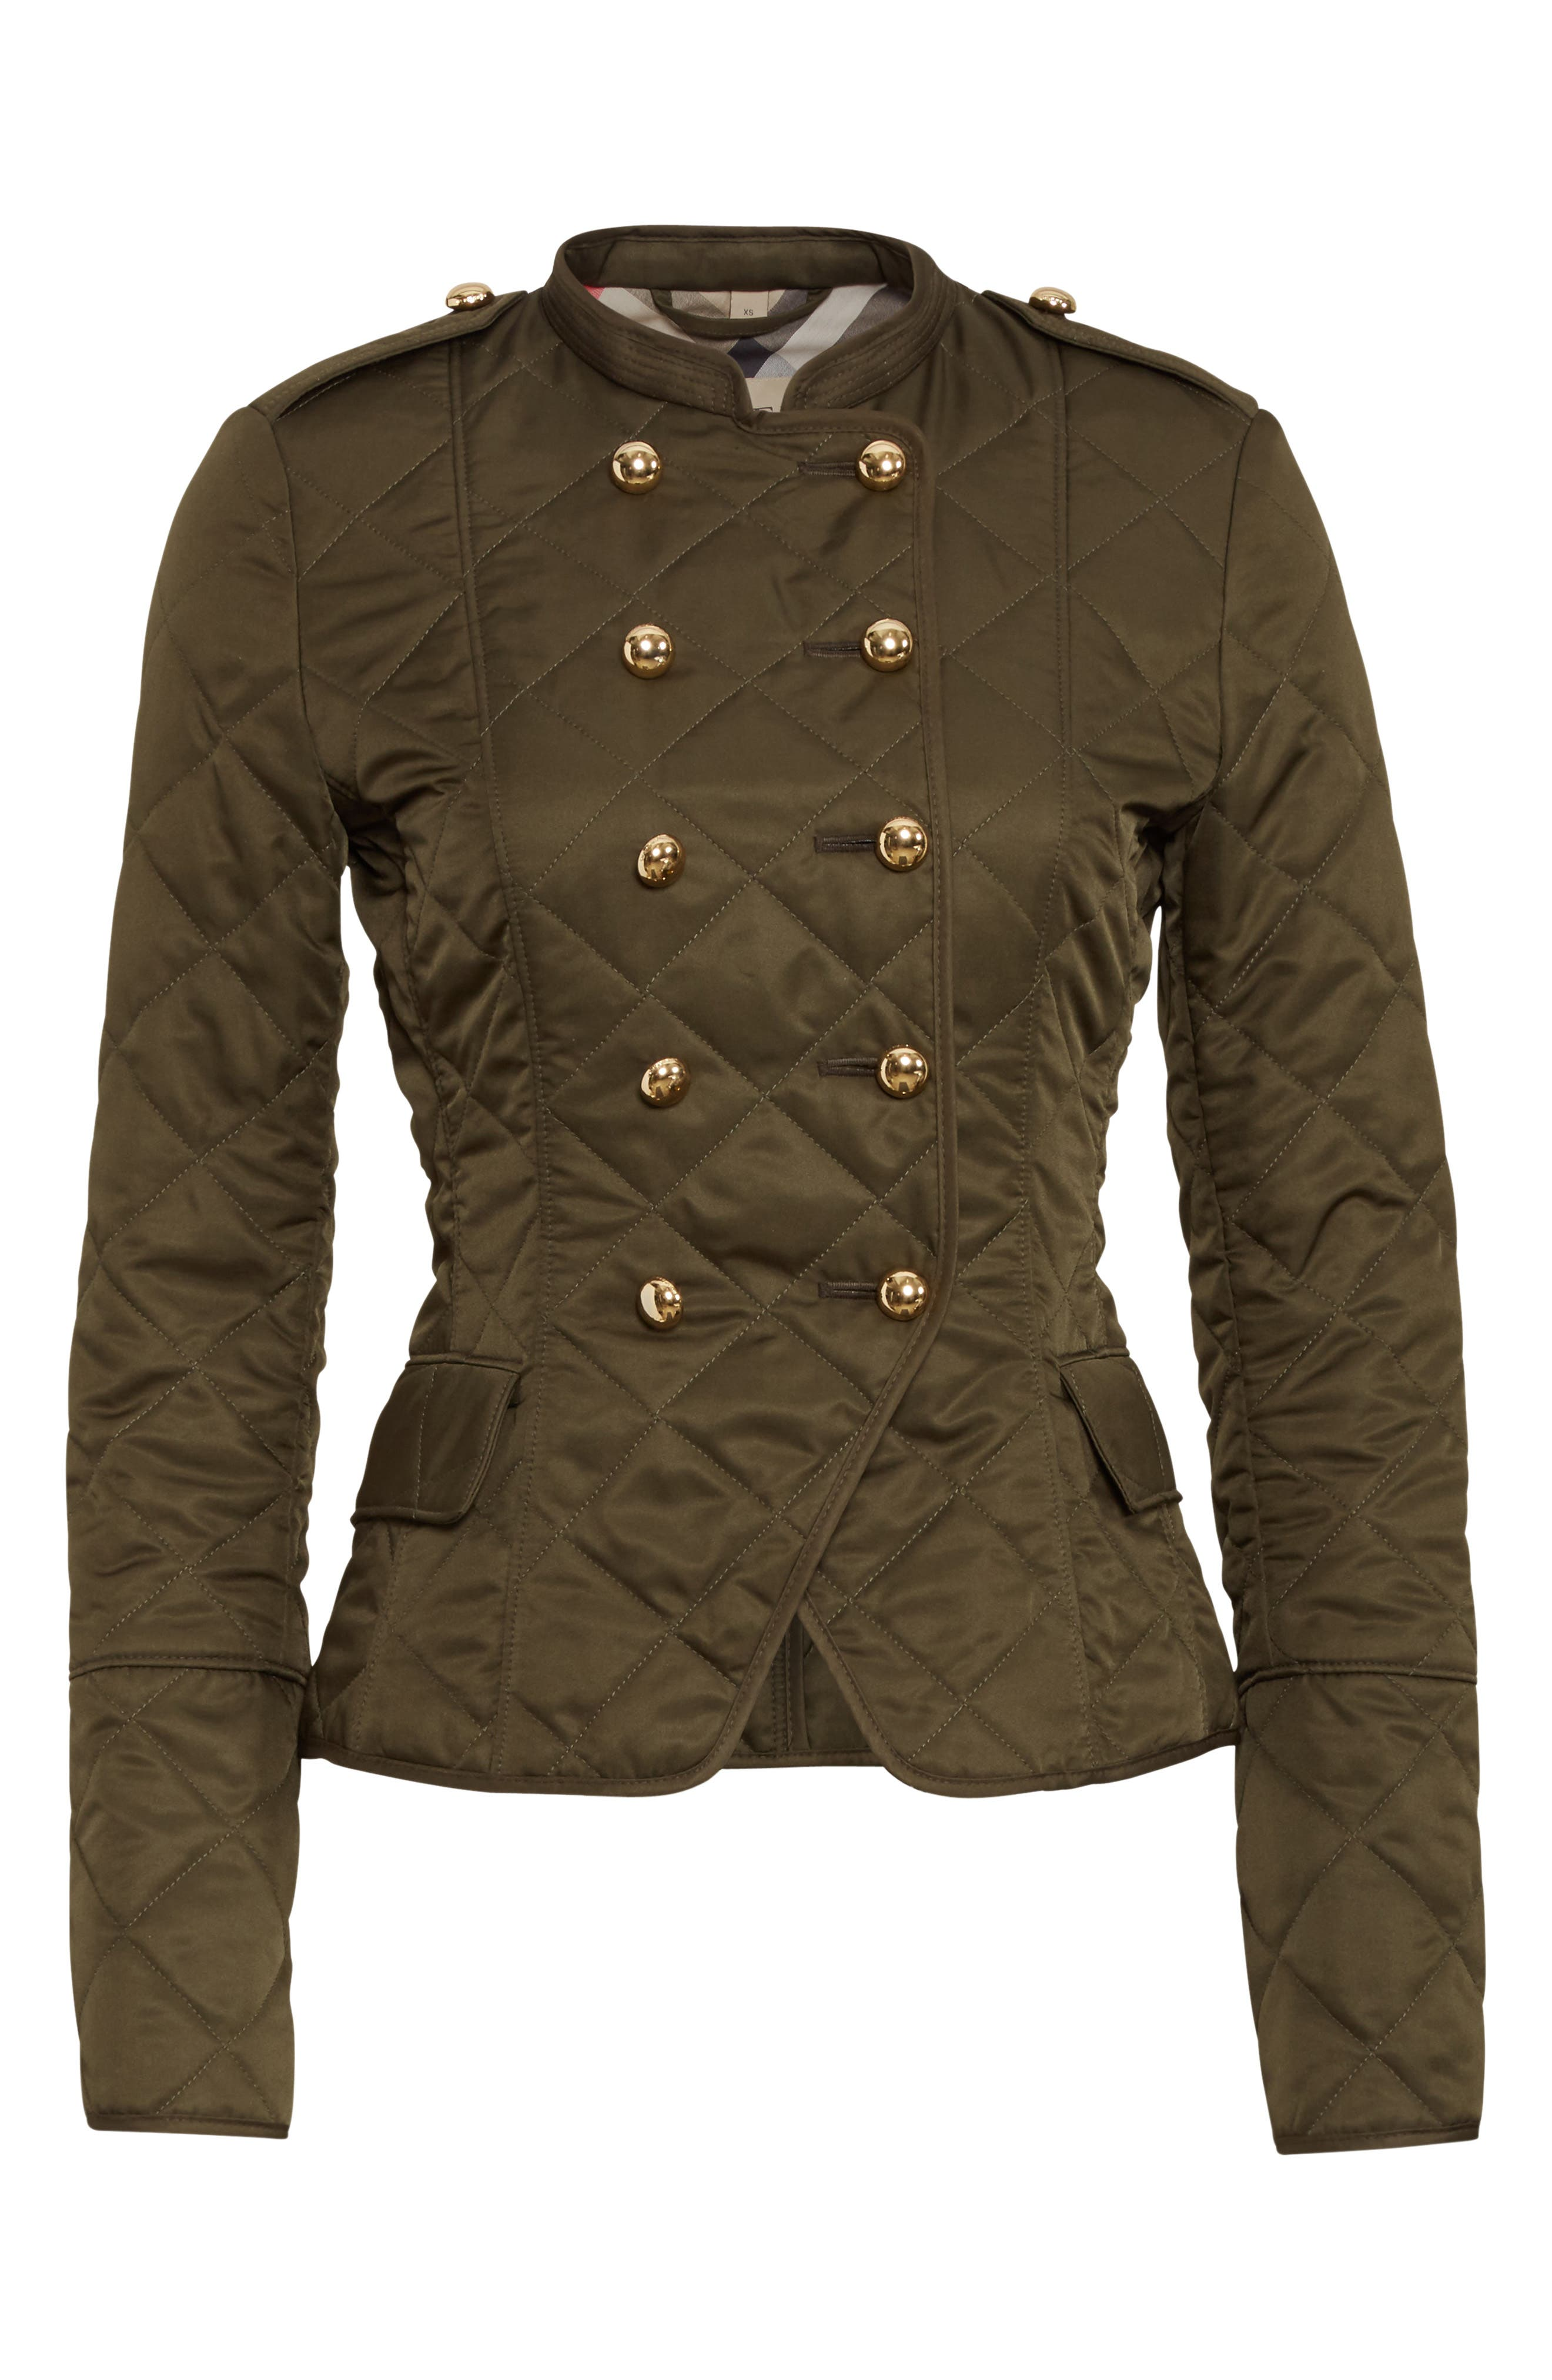 Boscastle Quilted Military Jacket,                             Alternate thumbnail 5, color,                             301